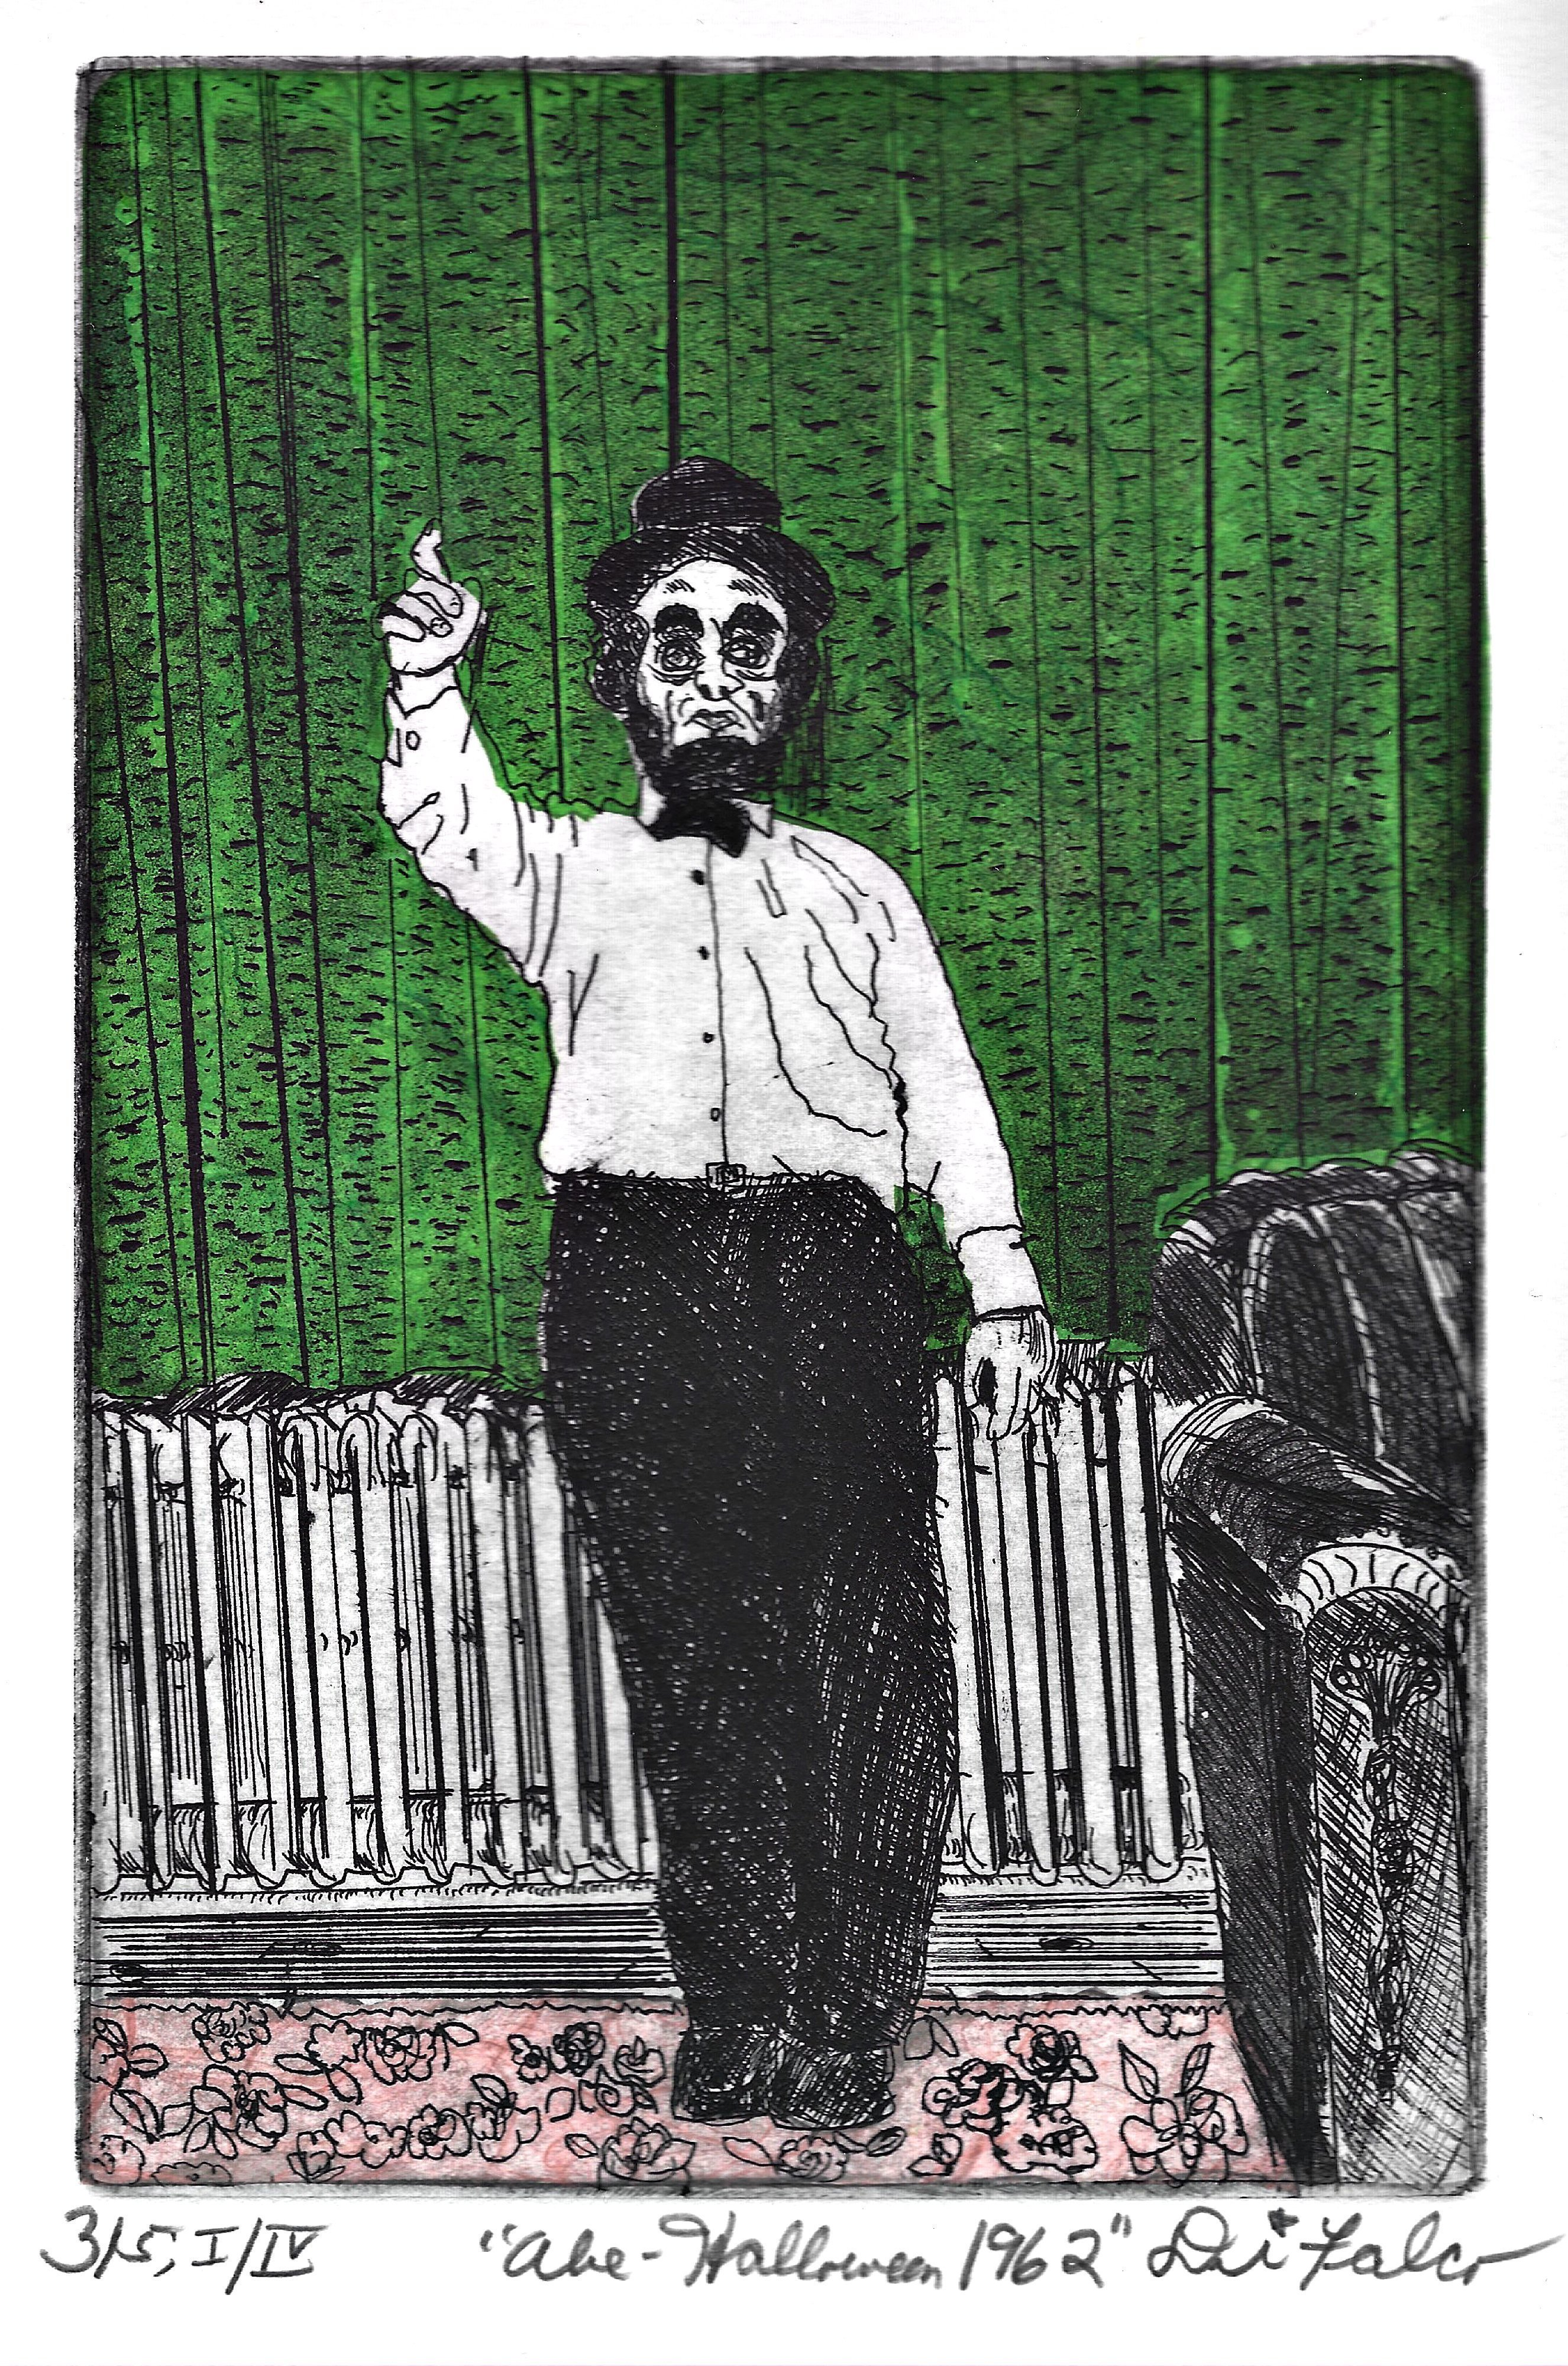 Jerry  Di Falco: 'abe on halloween 1962', 2018 Etching, Holidays. Artist Description: THIS ETCHING WAS SELECTED TO BE INCLUDED IN THE 51st JURIED EXHIBITION AT THE STATE MUSEUM OF PENNSYLVANIA IN HARRISBURG. THE SHOW, ENTITLED ART OF THE STATE, RUNS NOW THROUGH SEPTEMBER 1, 2018. The detail images are actually prints number one and two in this First Edition. This ...